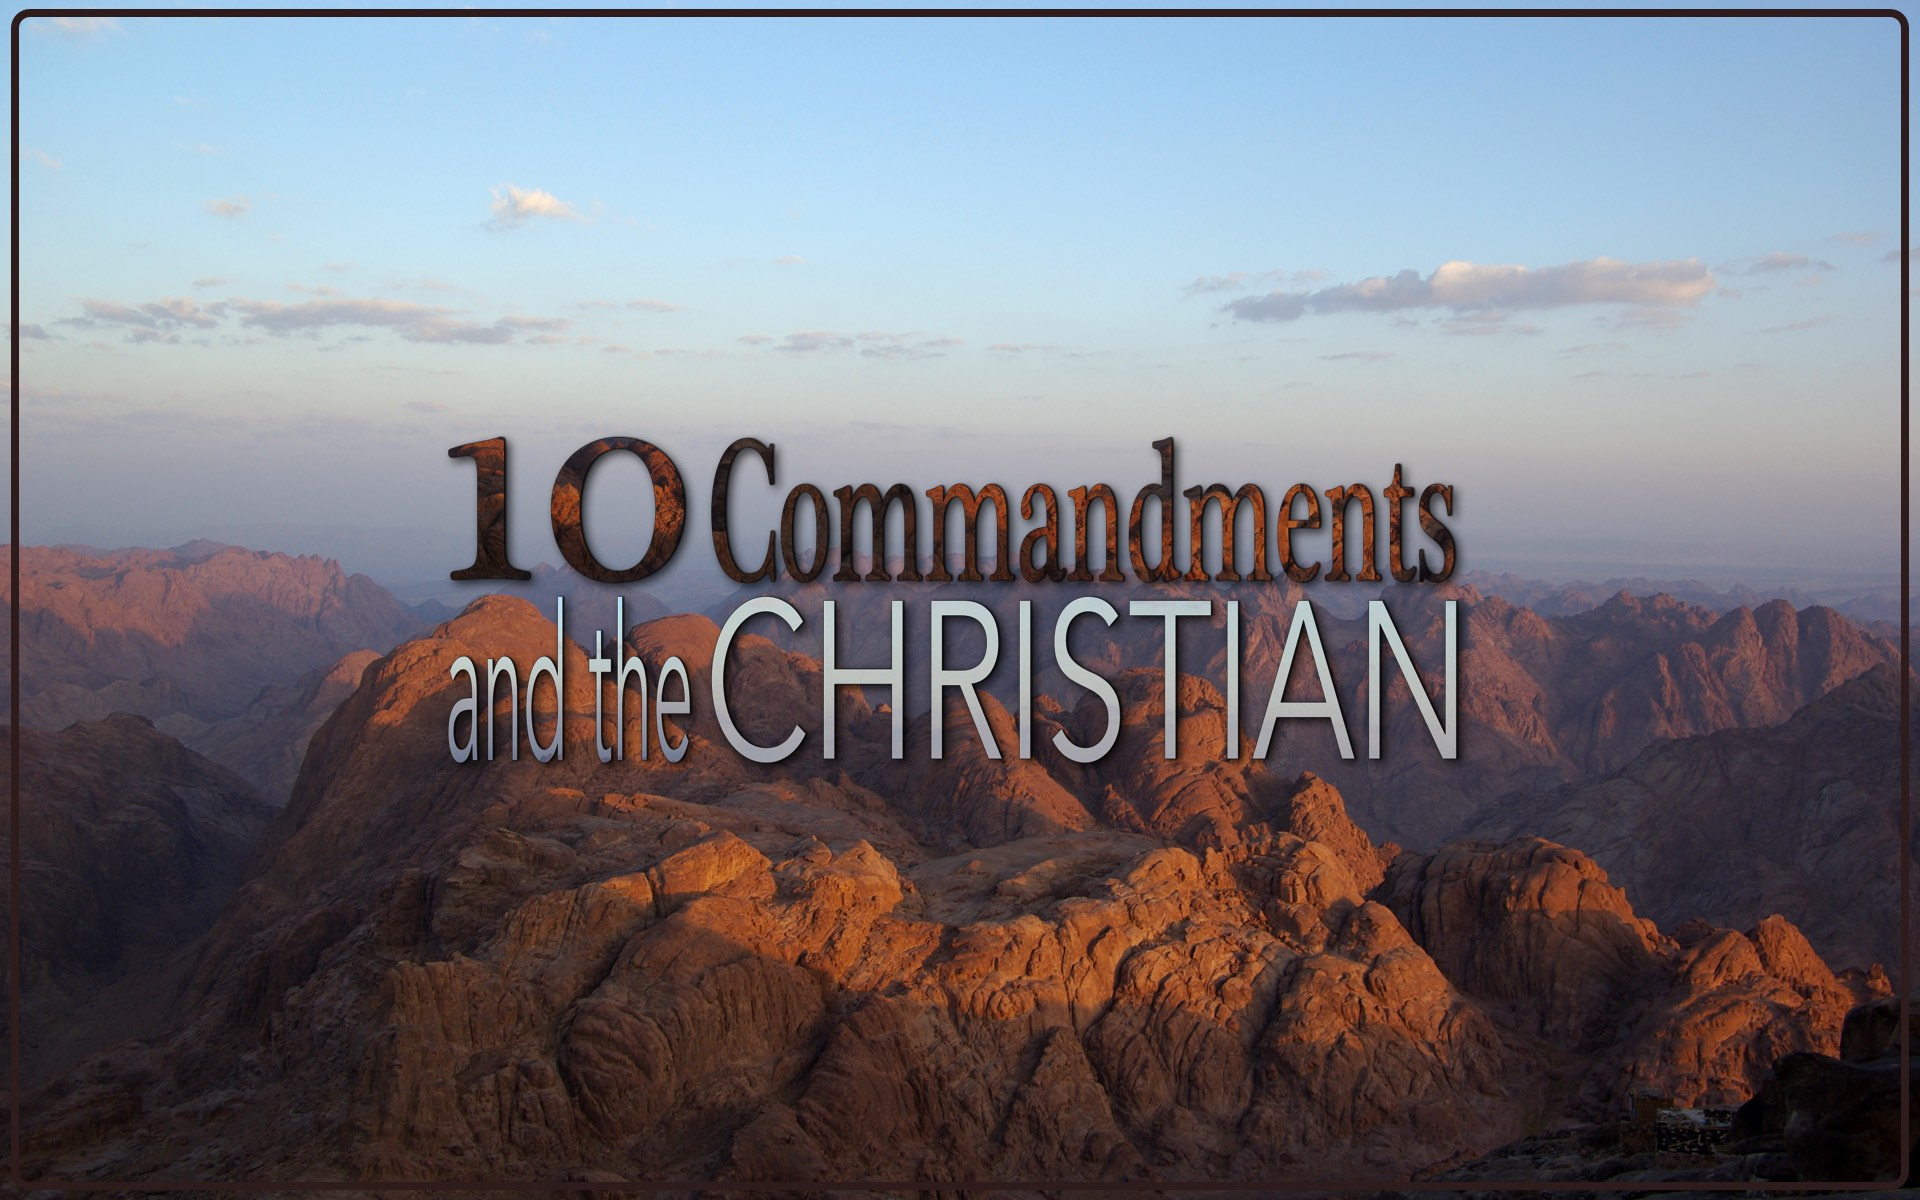 10 Commandments and Christians